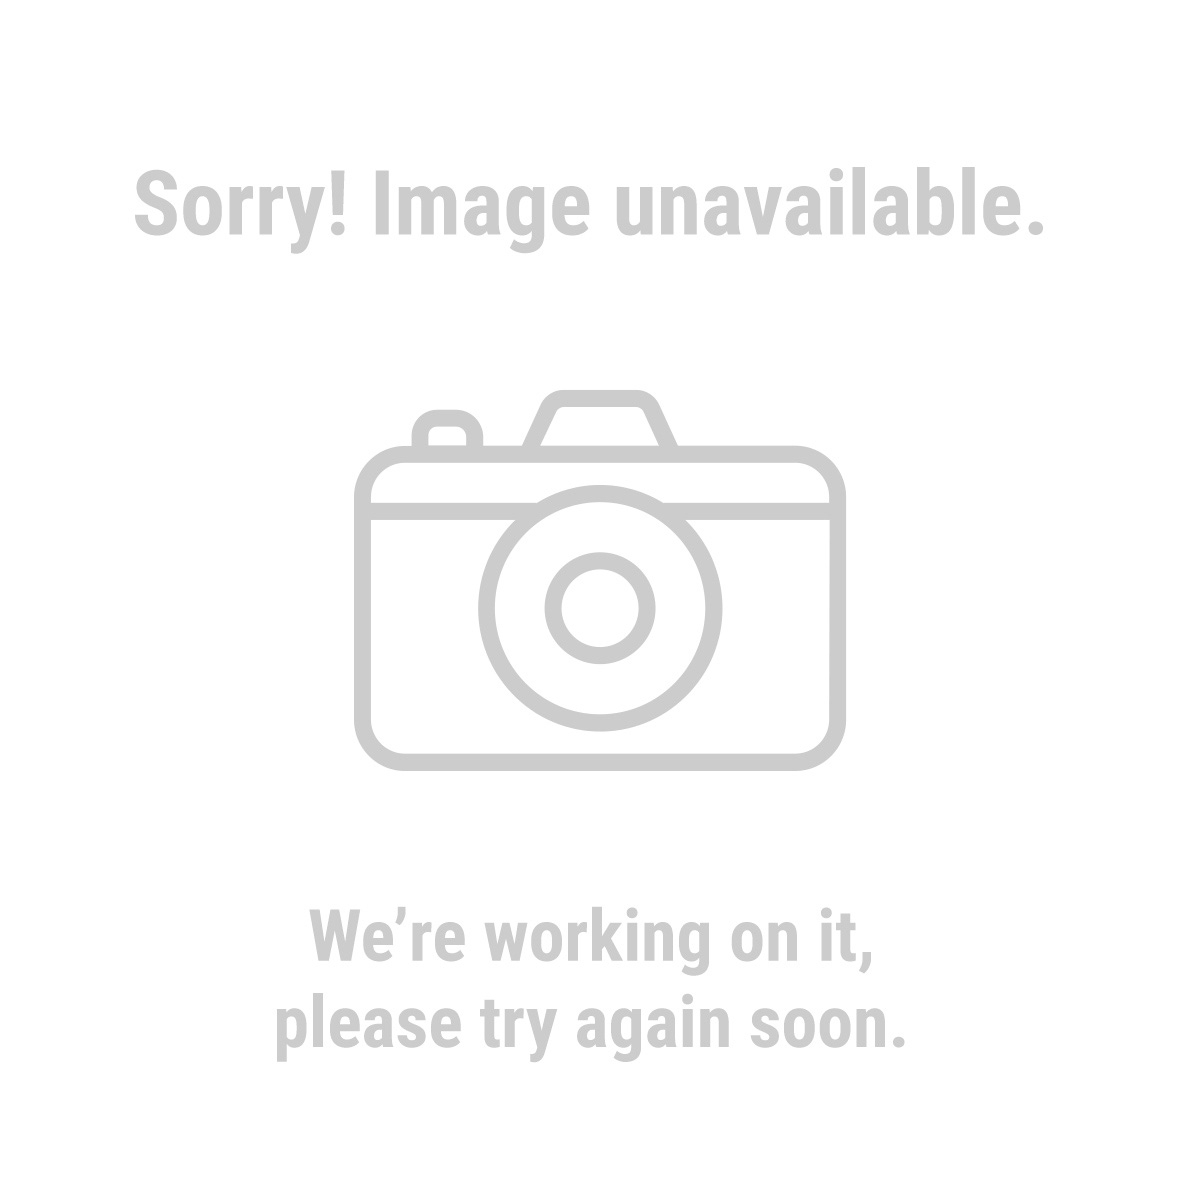 100 Piece Security Bit Set